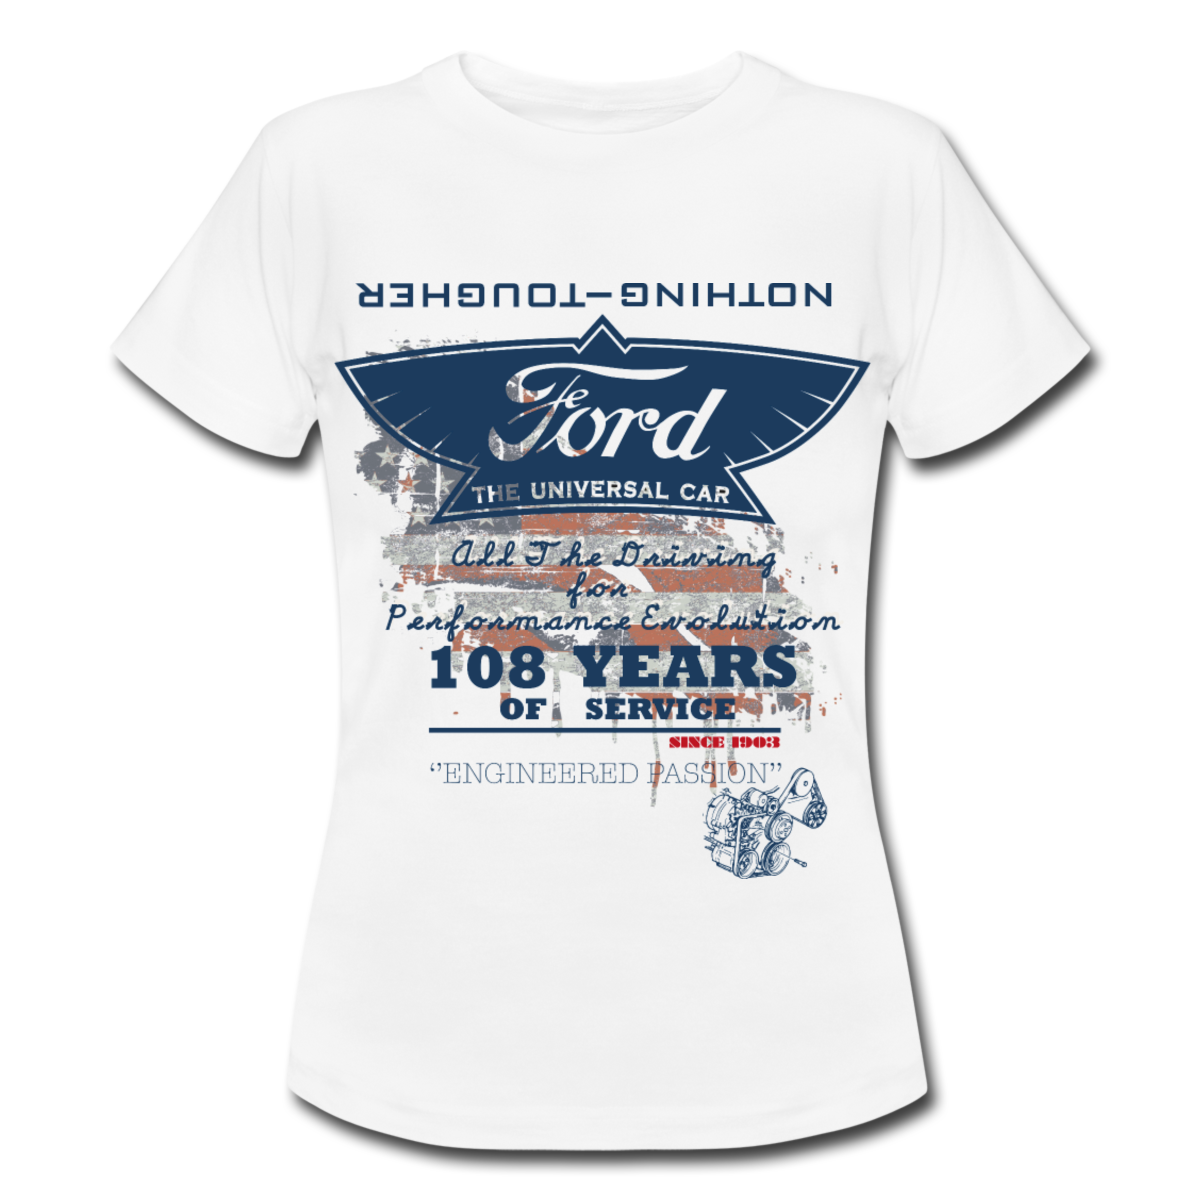 Ford clothing for women